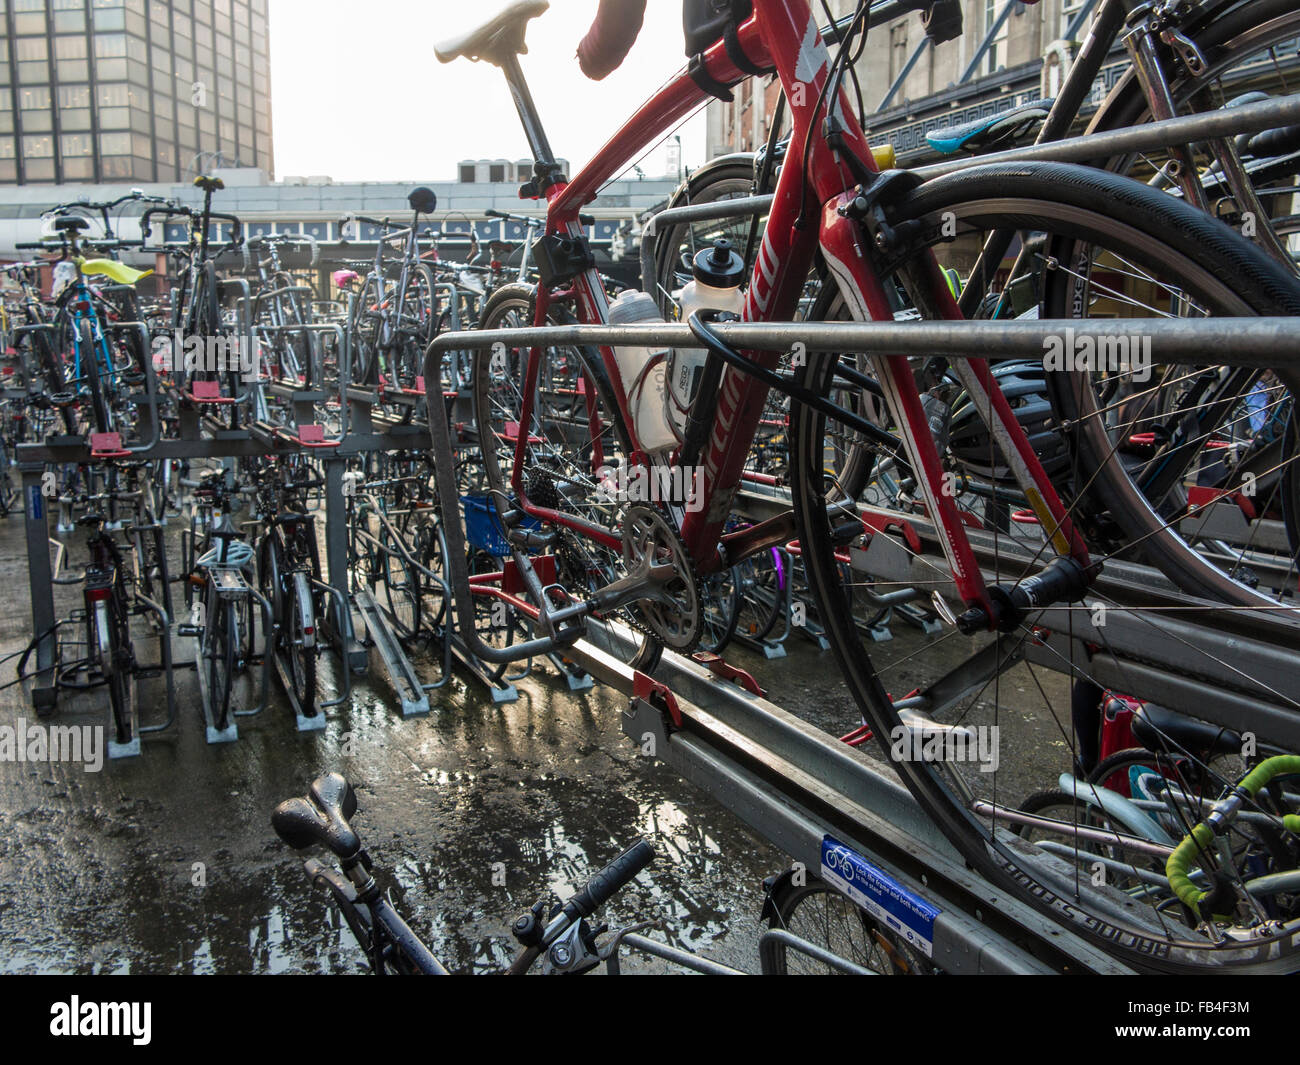 Commuter bicycles stacked high at Waterloo station in London - Stock Image